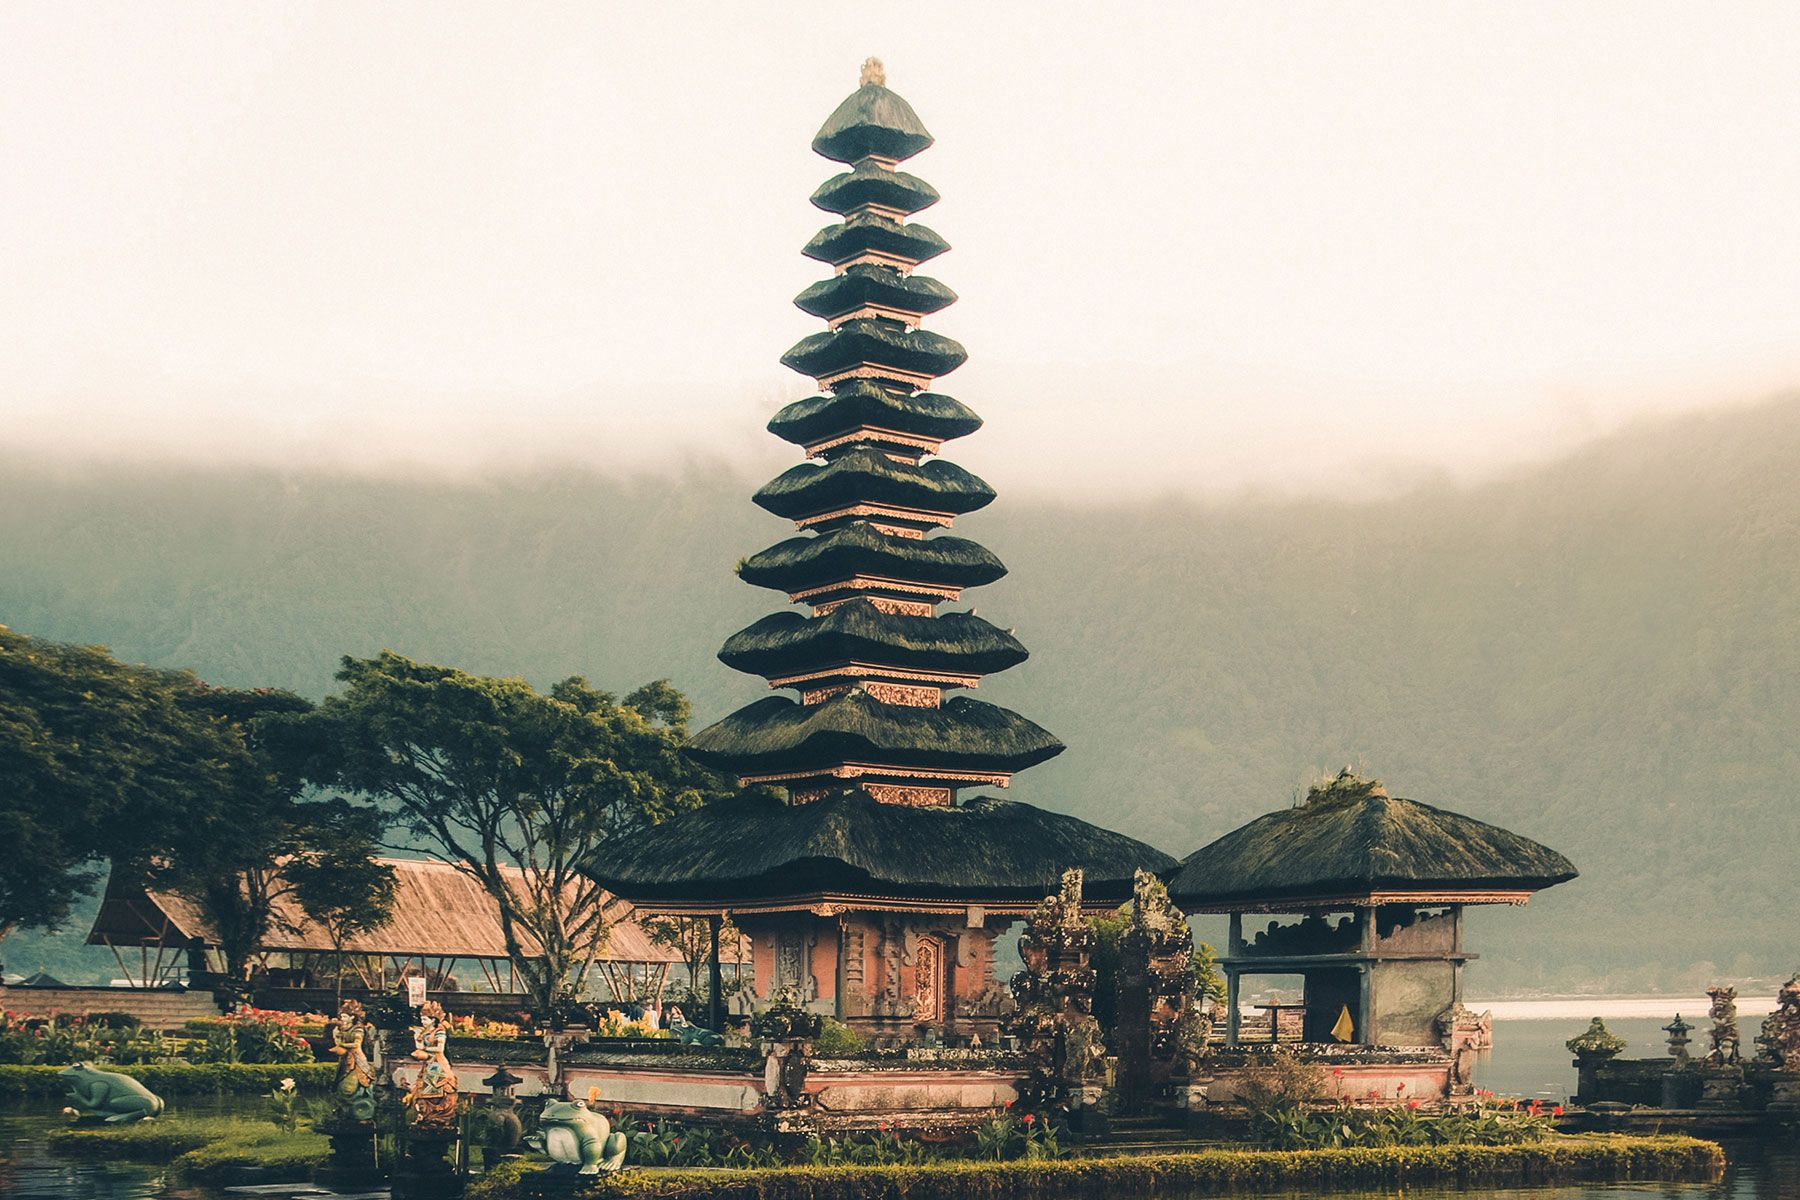 Bali is a great destination for cheap beach holidays